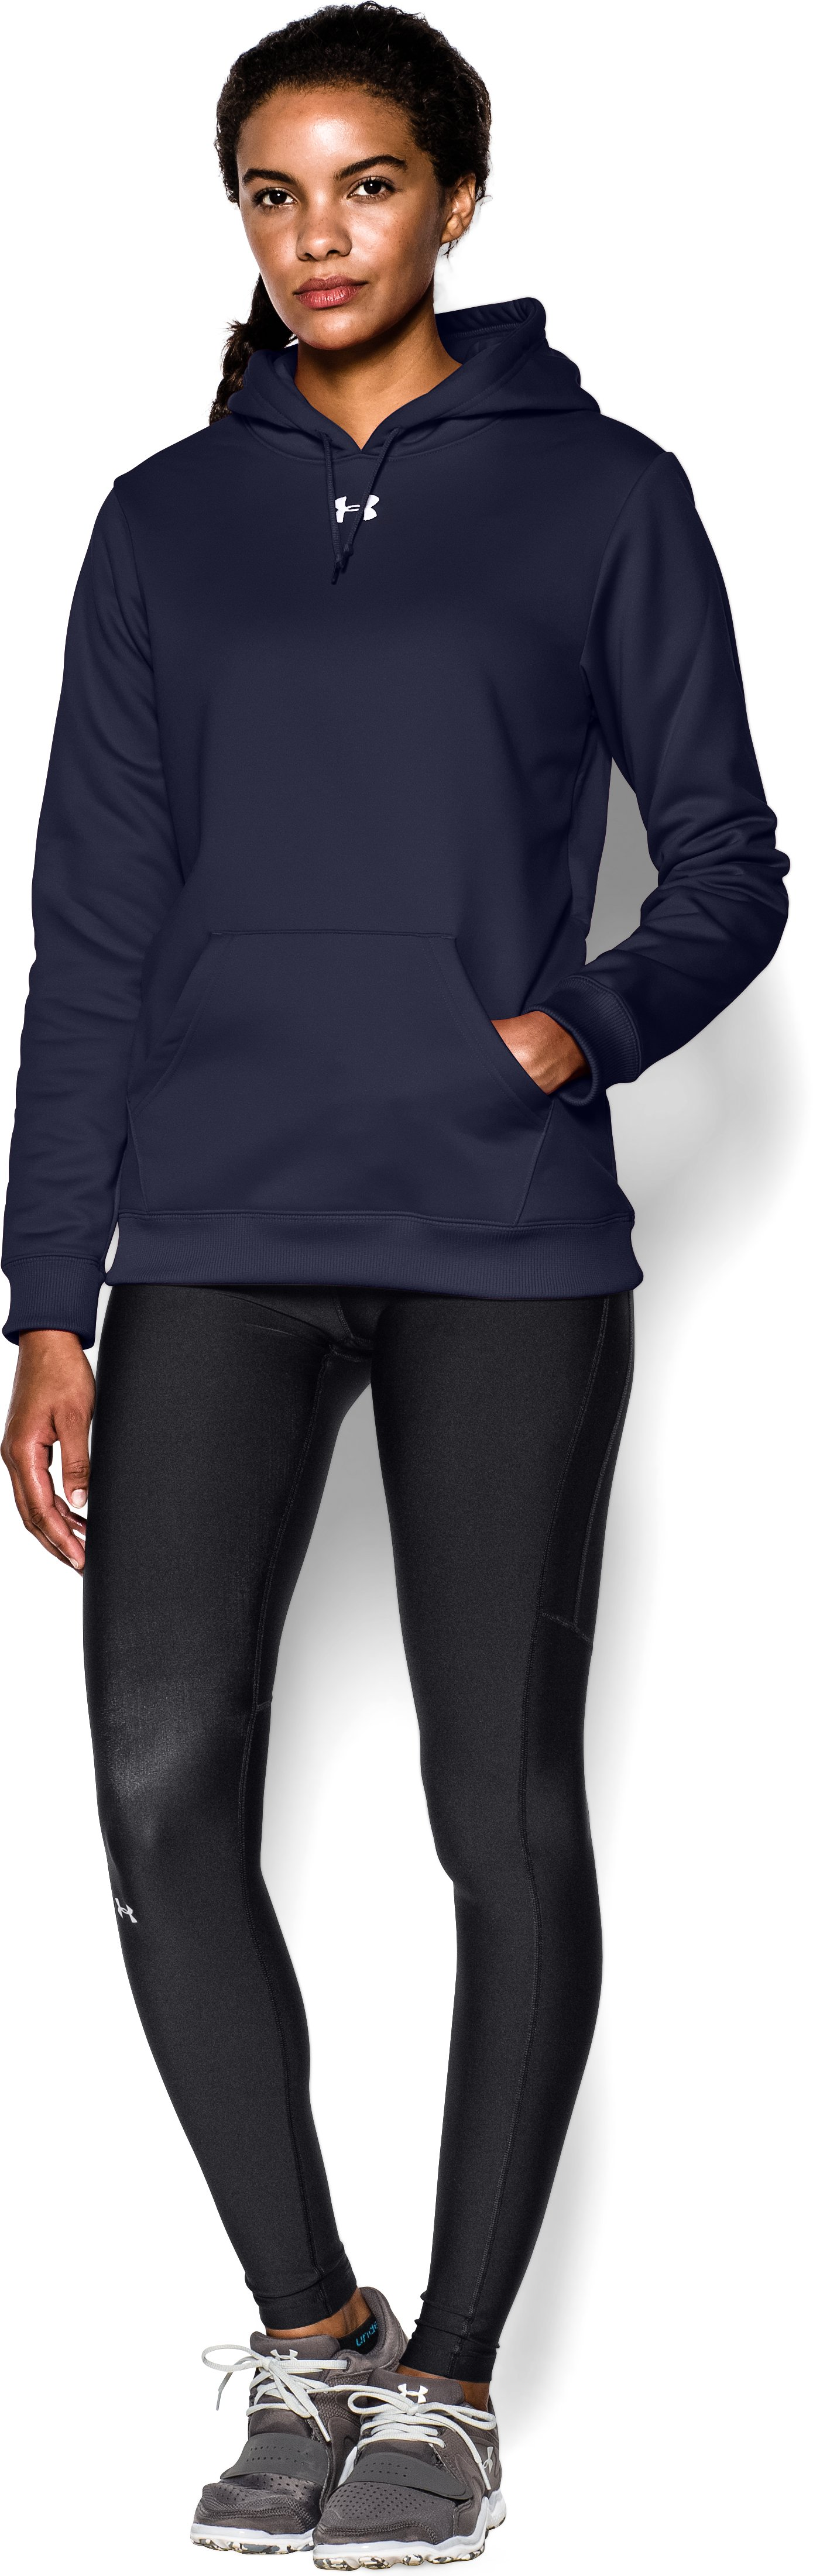 Women's Armour® Fleece Team Hoodie, Midnight Navy, Front